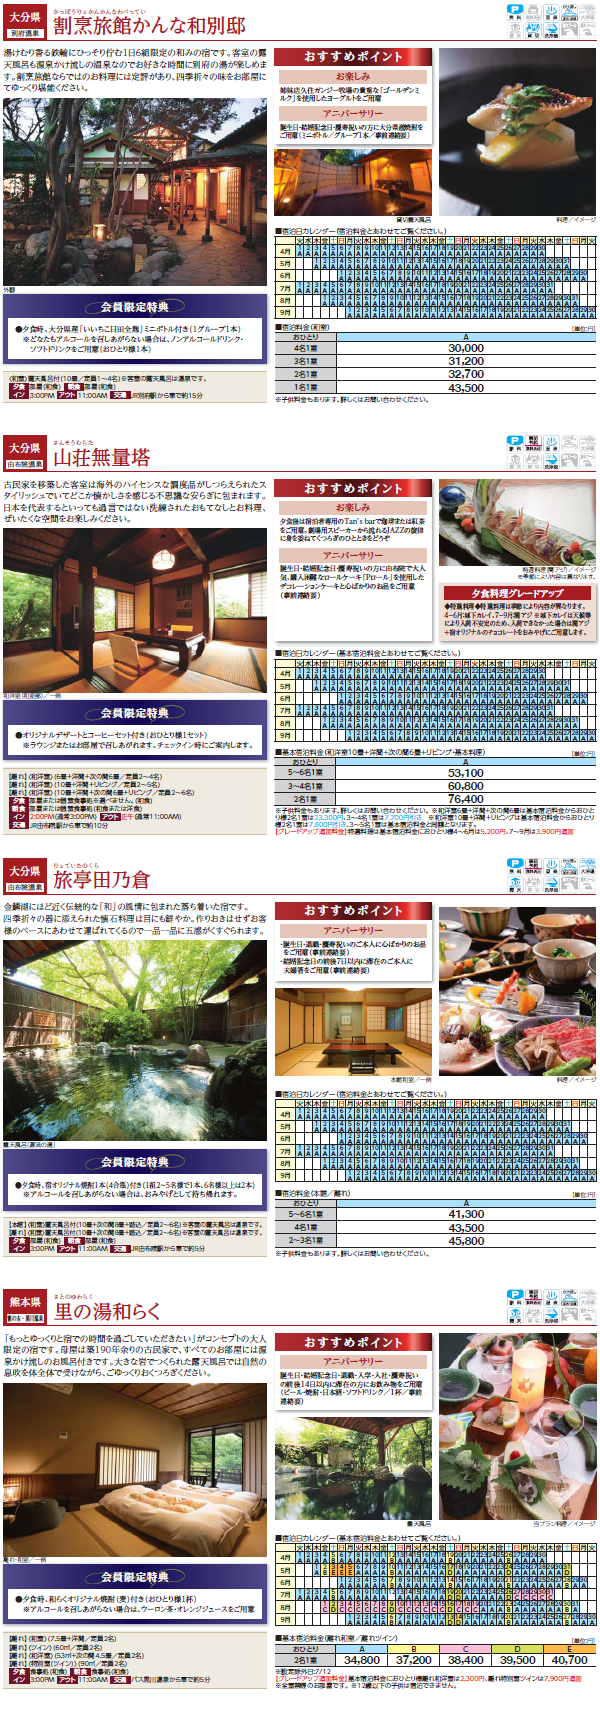 stay_plan_ryokan_1403_25